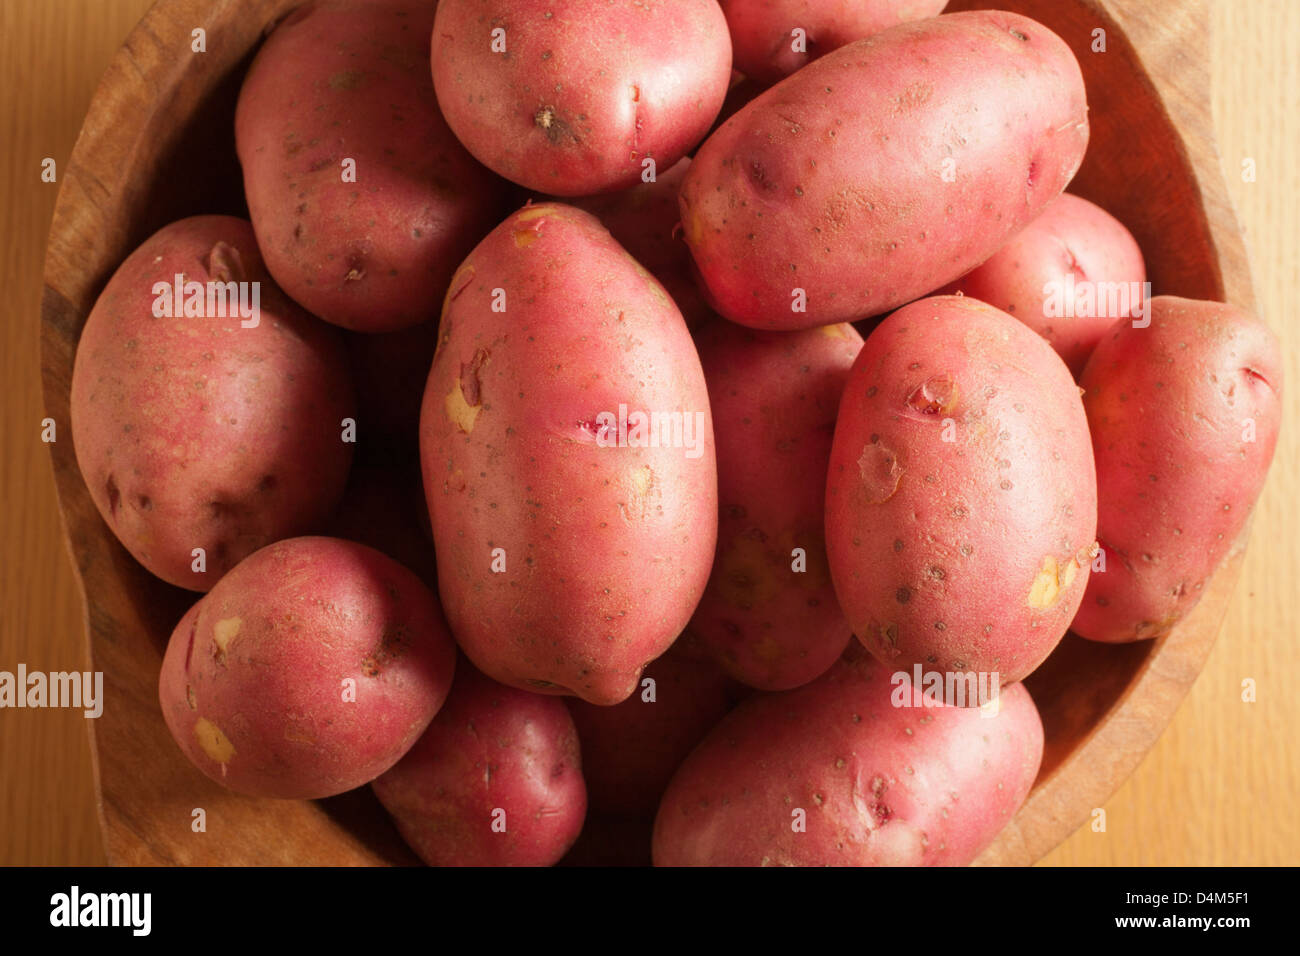 wooden bowl of red potatoes - Stock Image